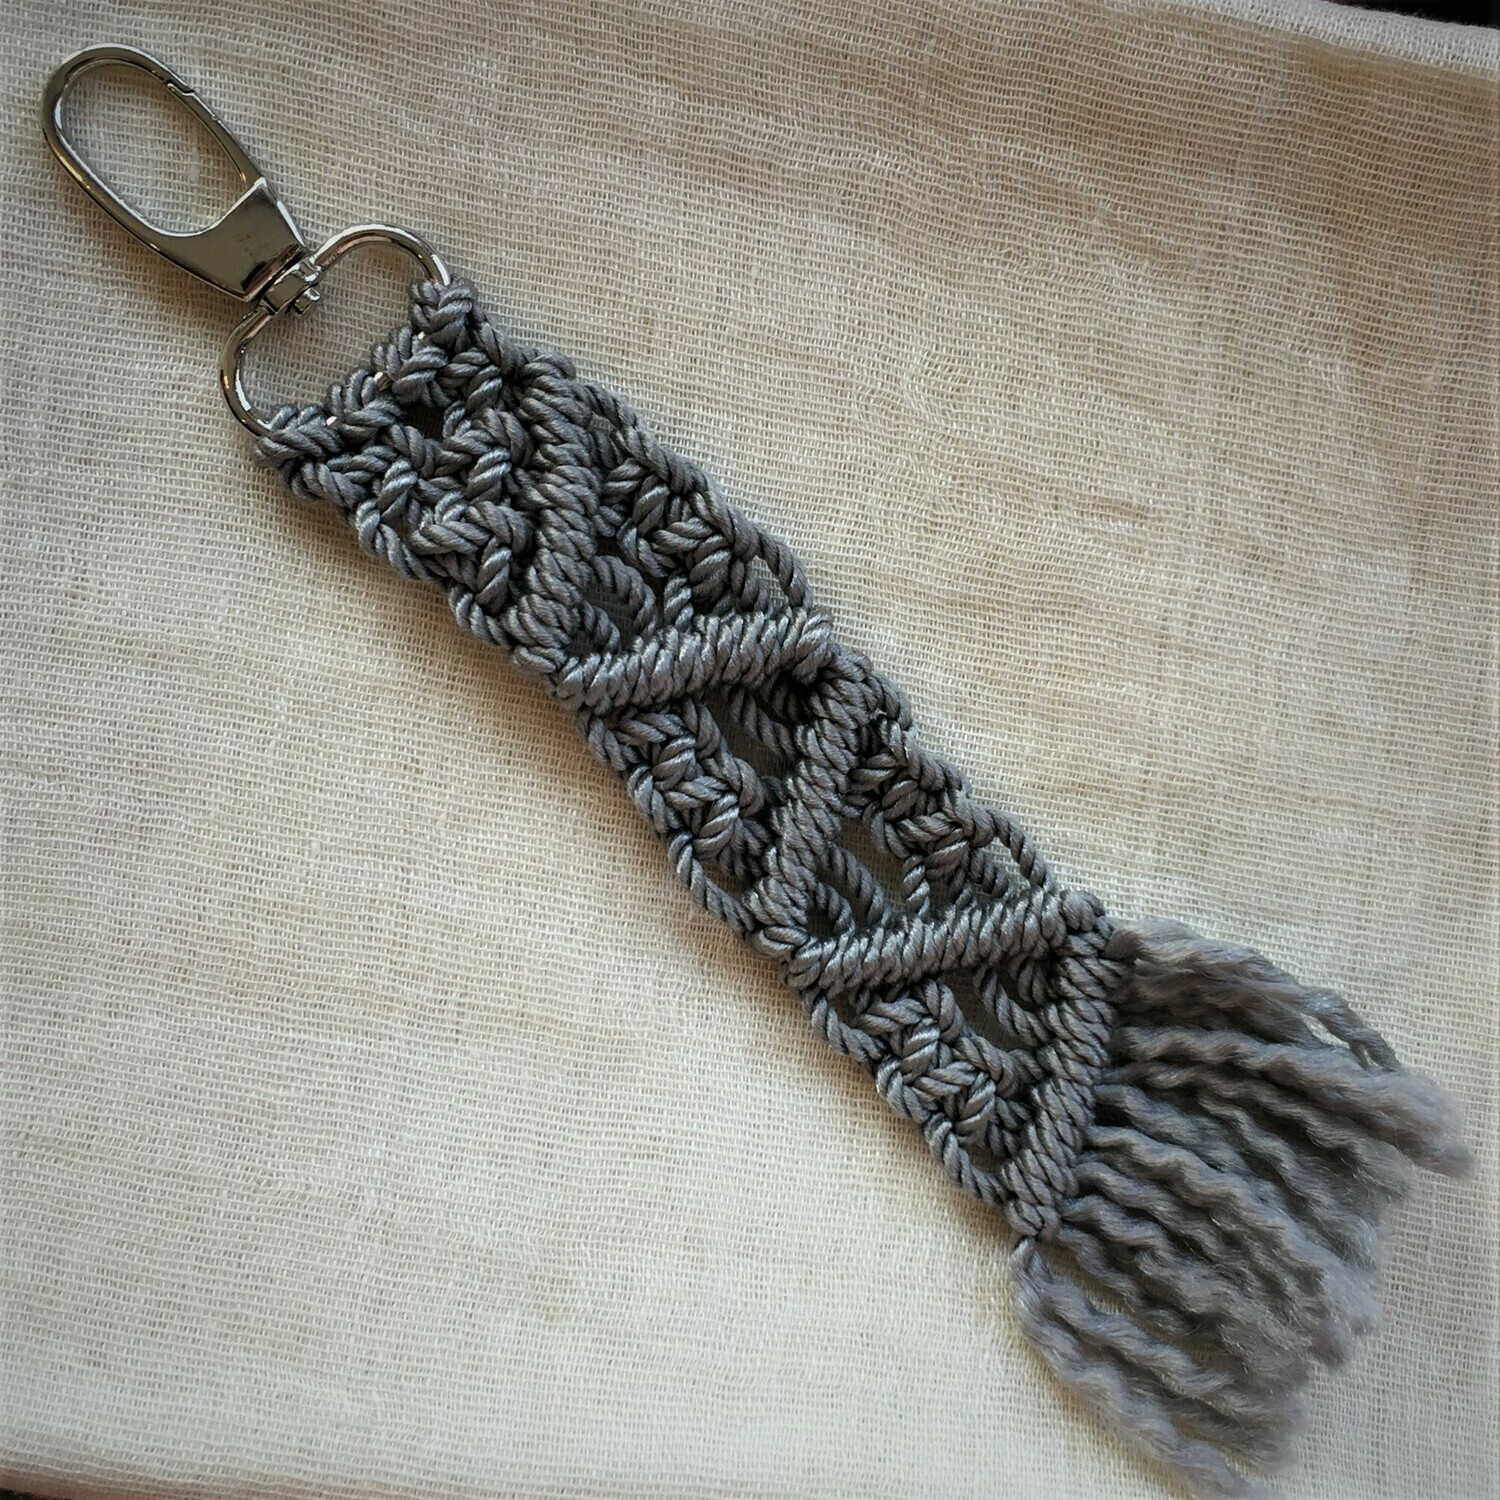 Keychain: hand made macramé, light grey